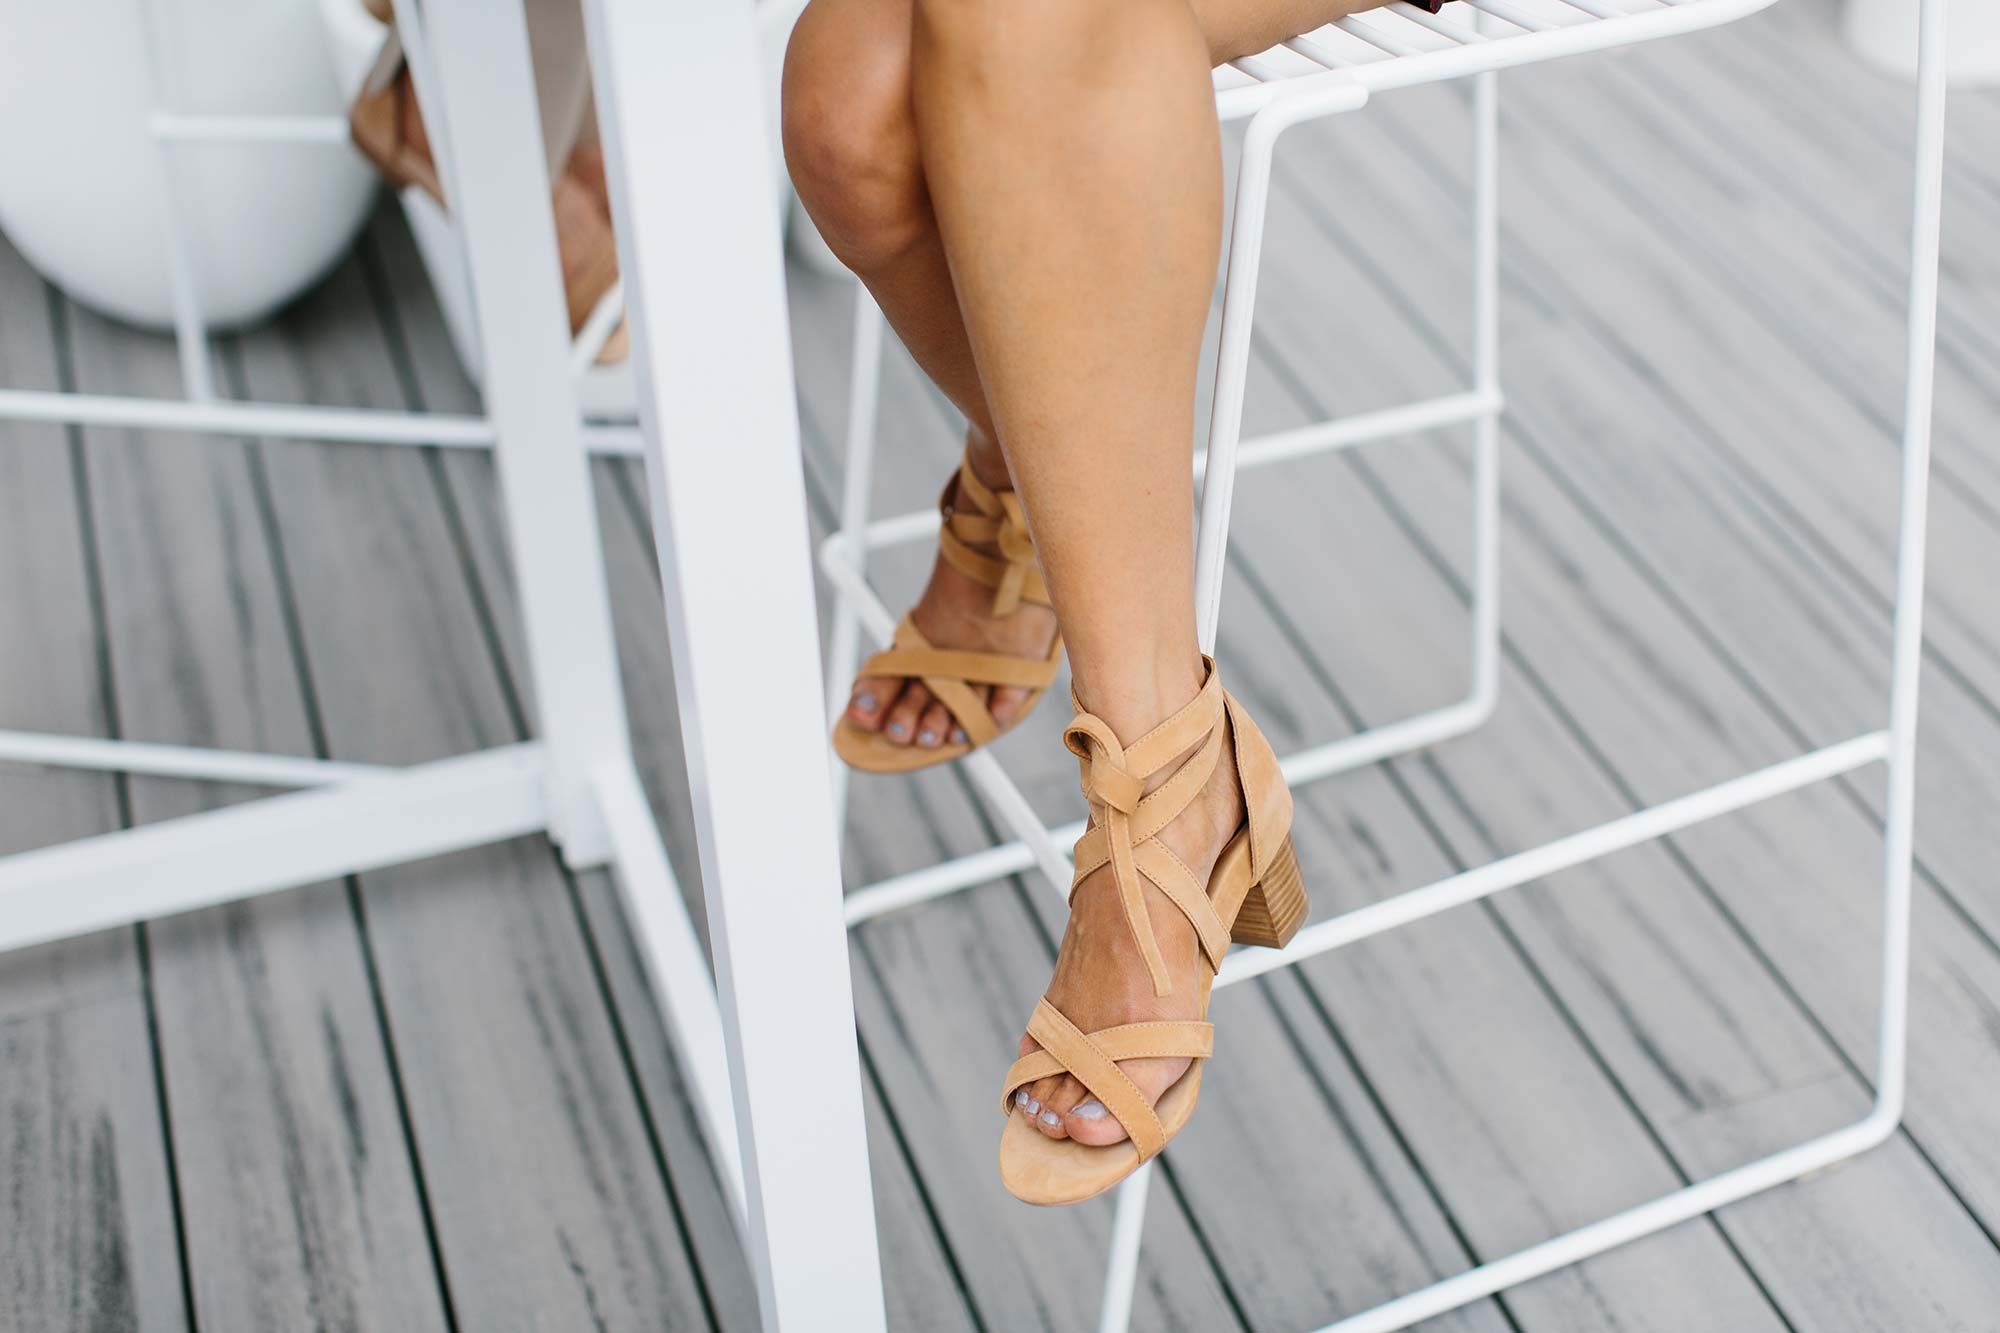 Bared_Footwear_Womens_Collaboration_Party_With_Lenzo_NYE_Party_Turaco_Tan_Nubuck_Low_Heels